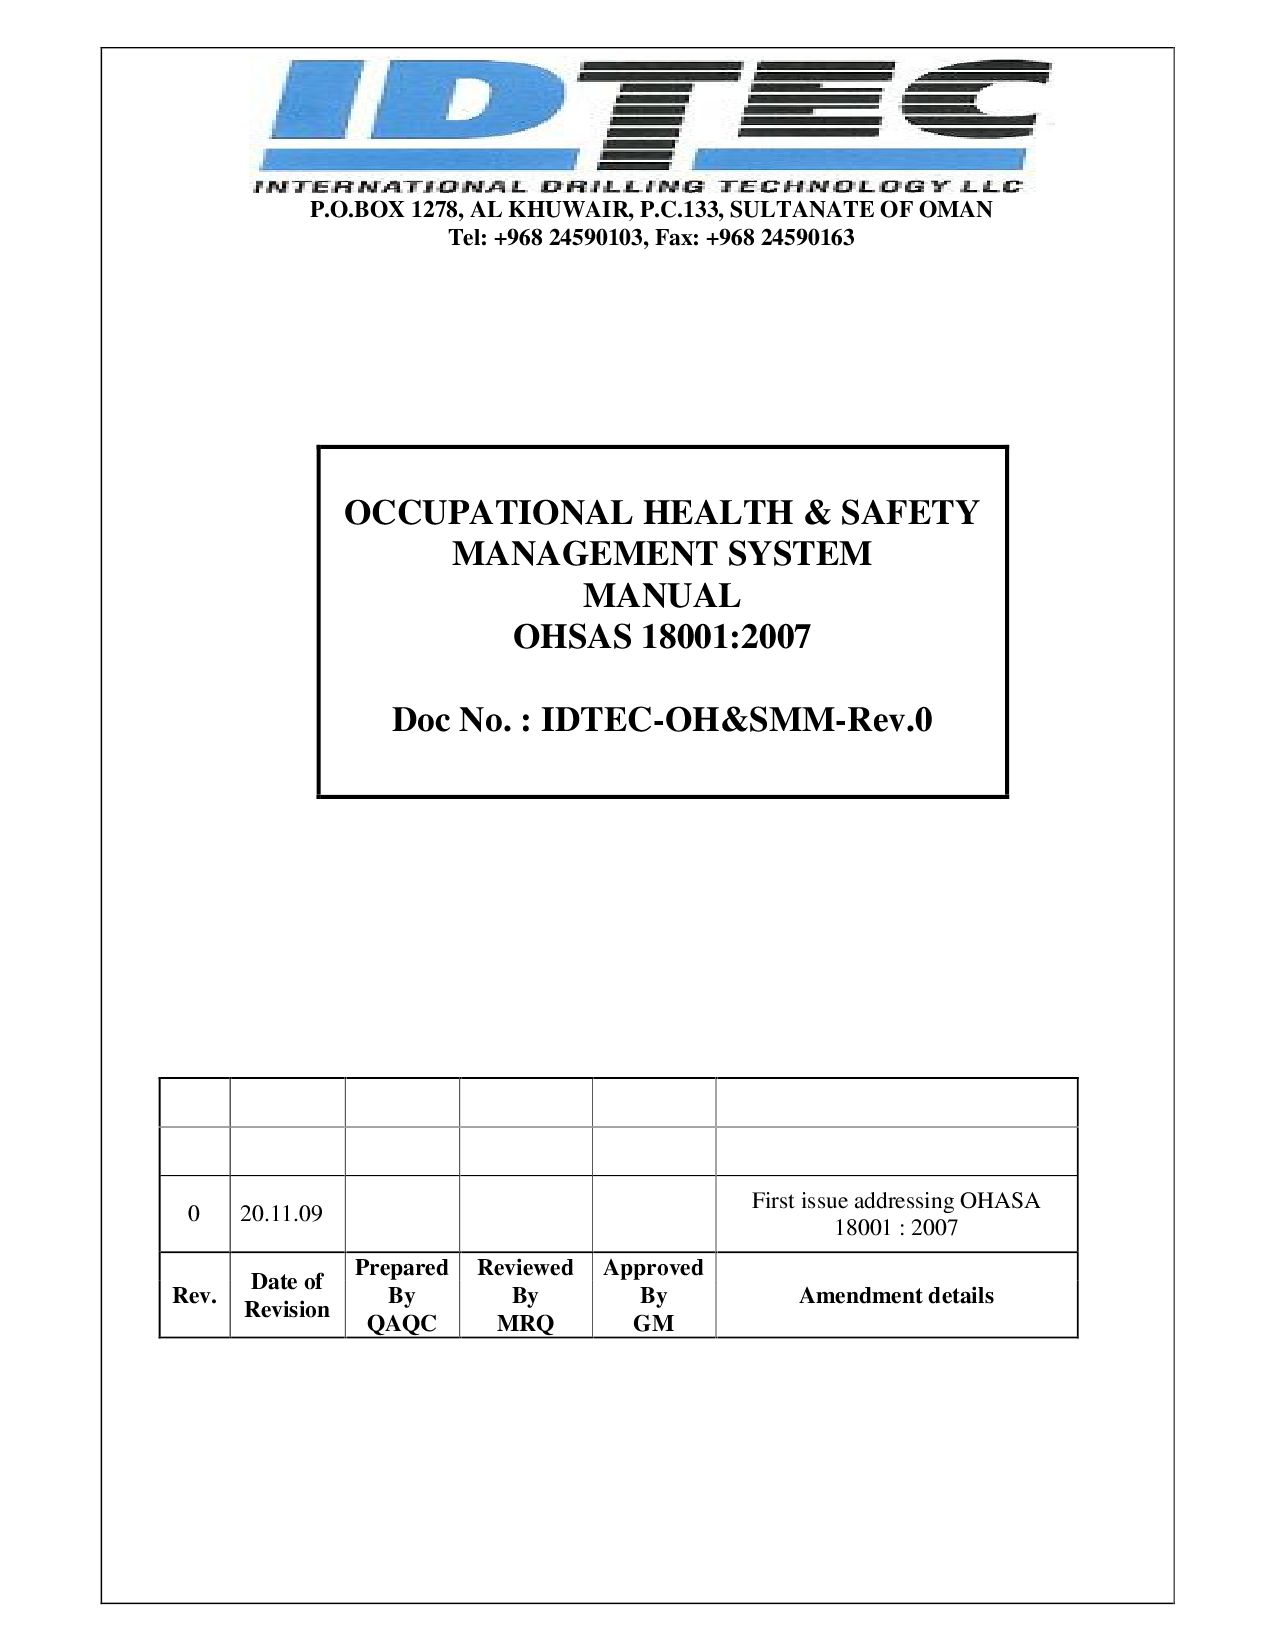 ohsas 18001 health u0026 safety manual and procedures package ohsas 18000  store Array - ohsas by raja s issuu rh issuu ...